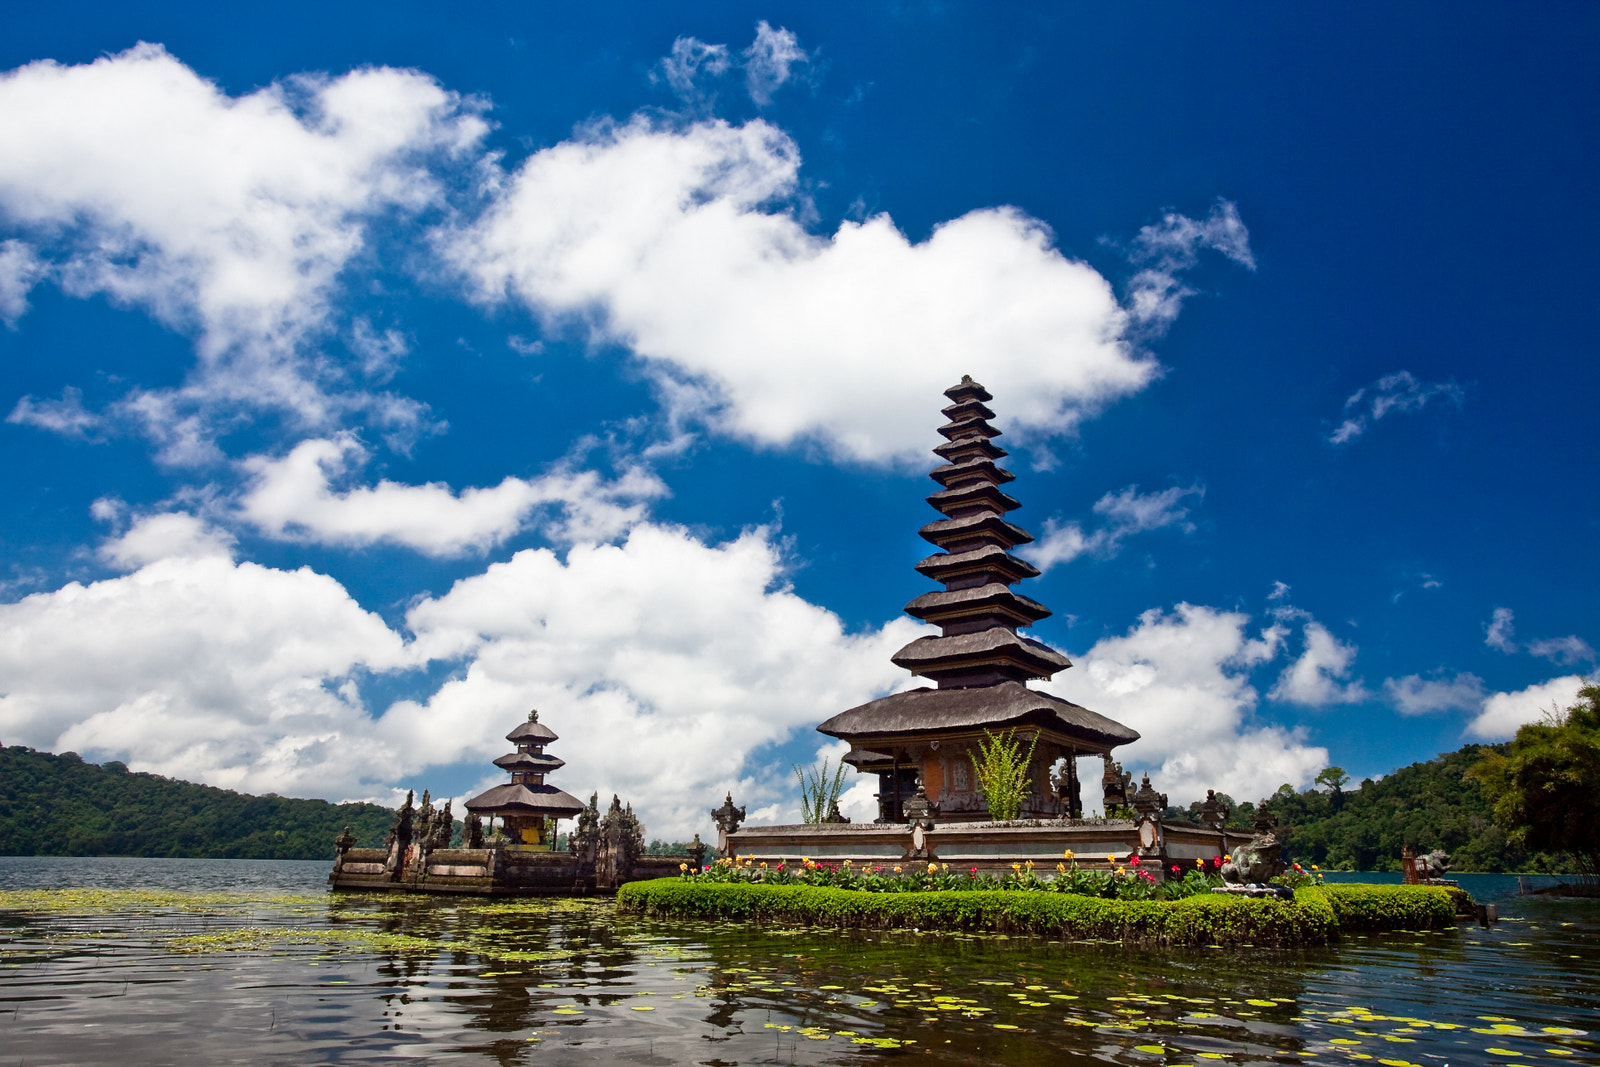 Photograph Ulun Danu by Ping Chen on 500px